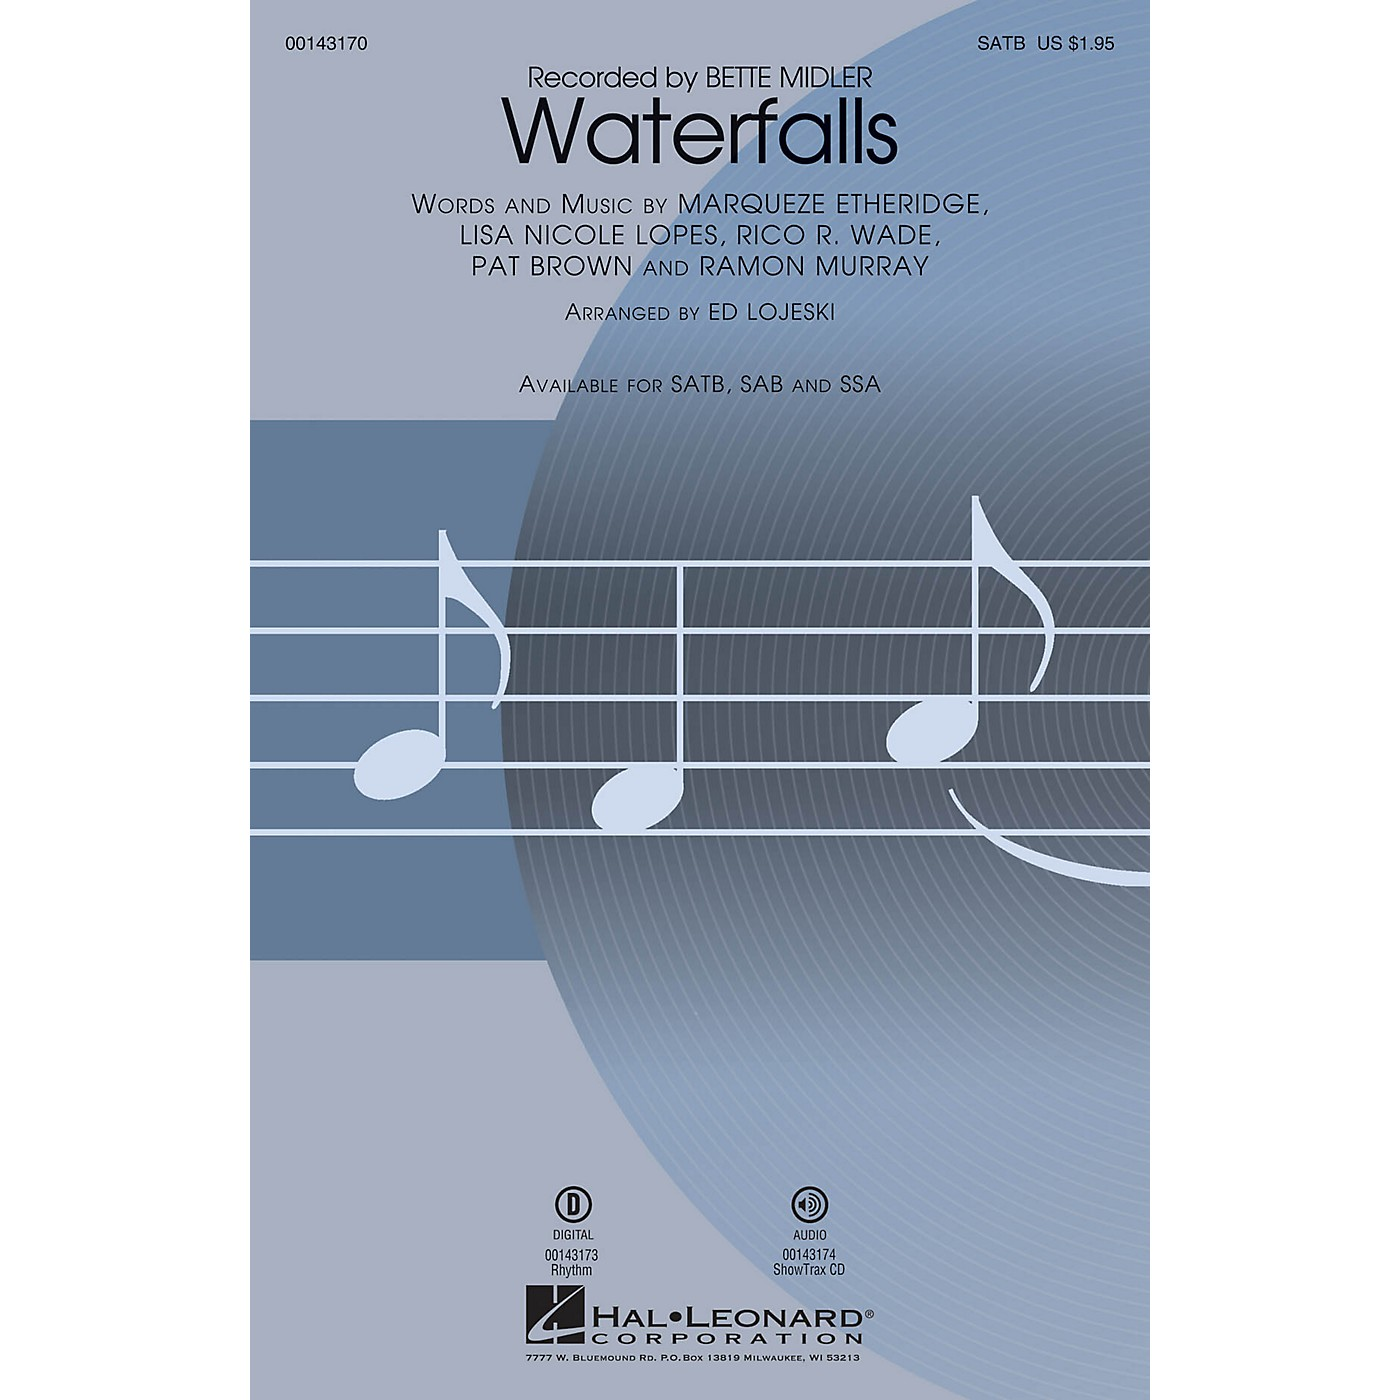 Hal Leonard Waterfalls SATB by Bette Midler arranged by Ed Lojeski thumbnail